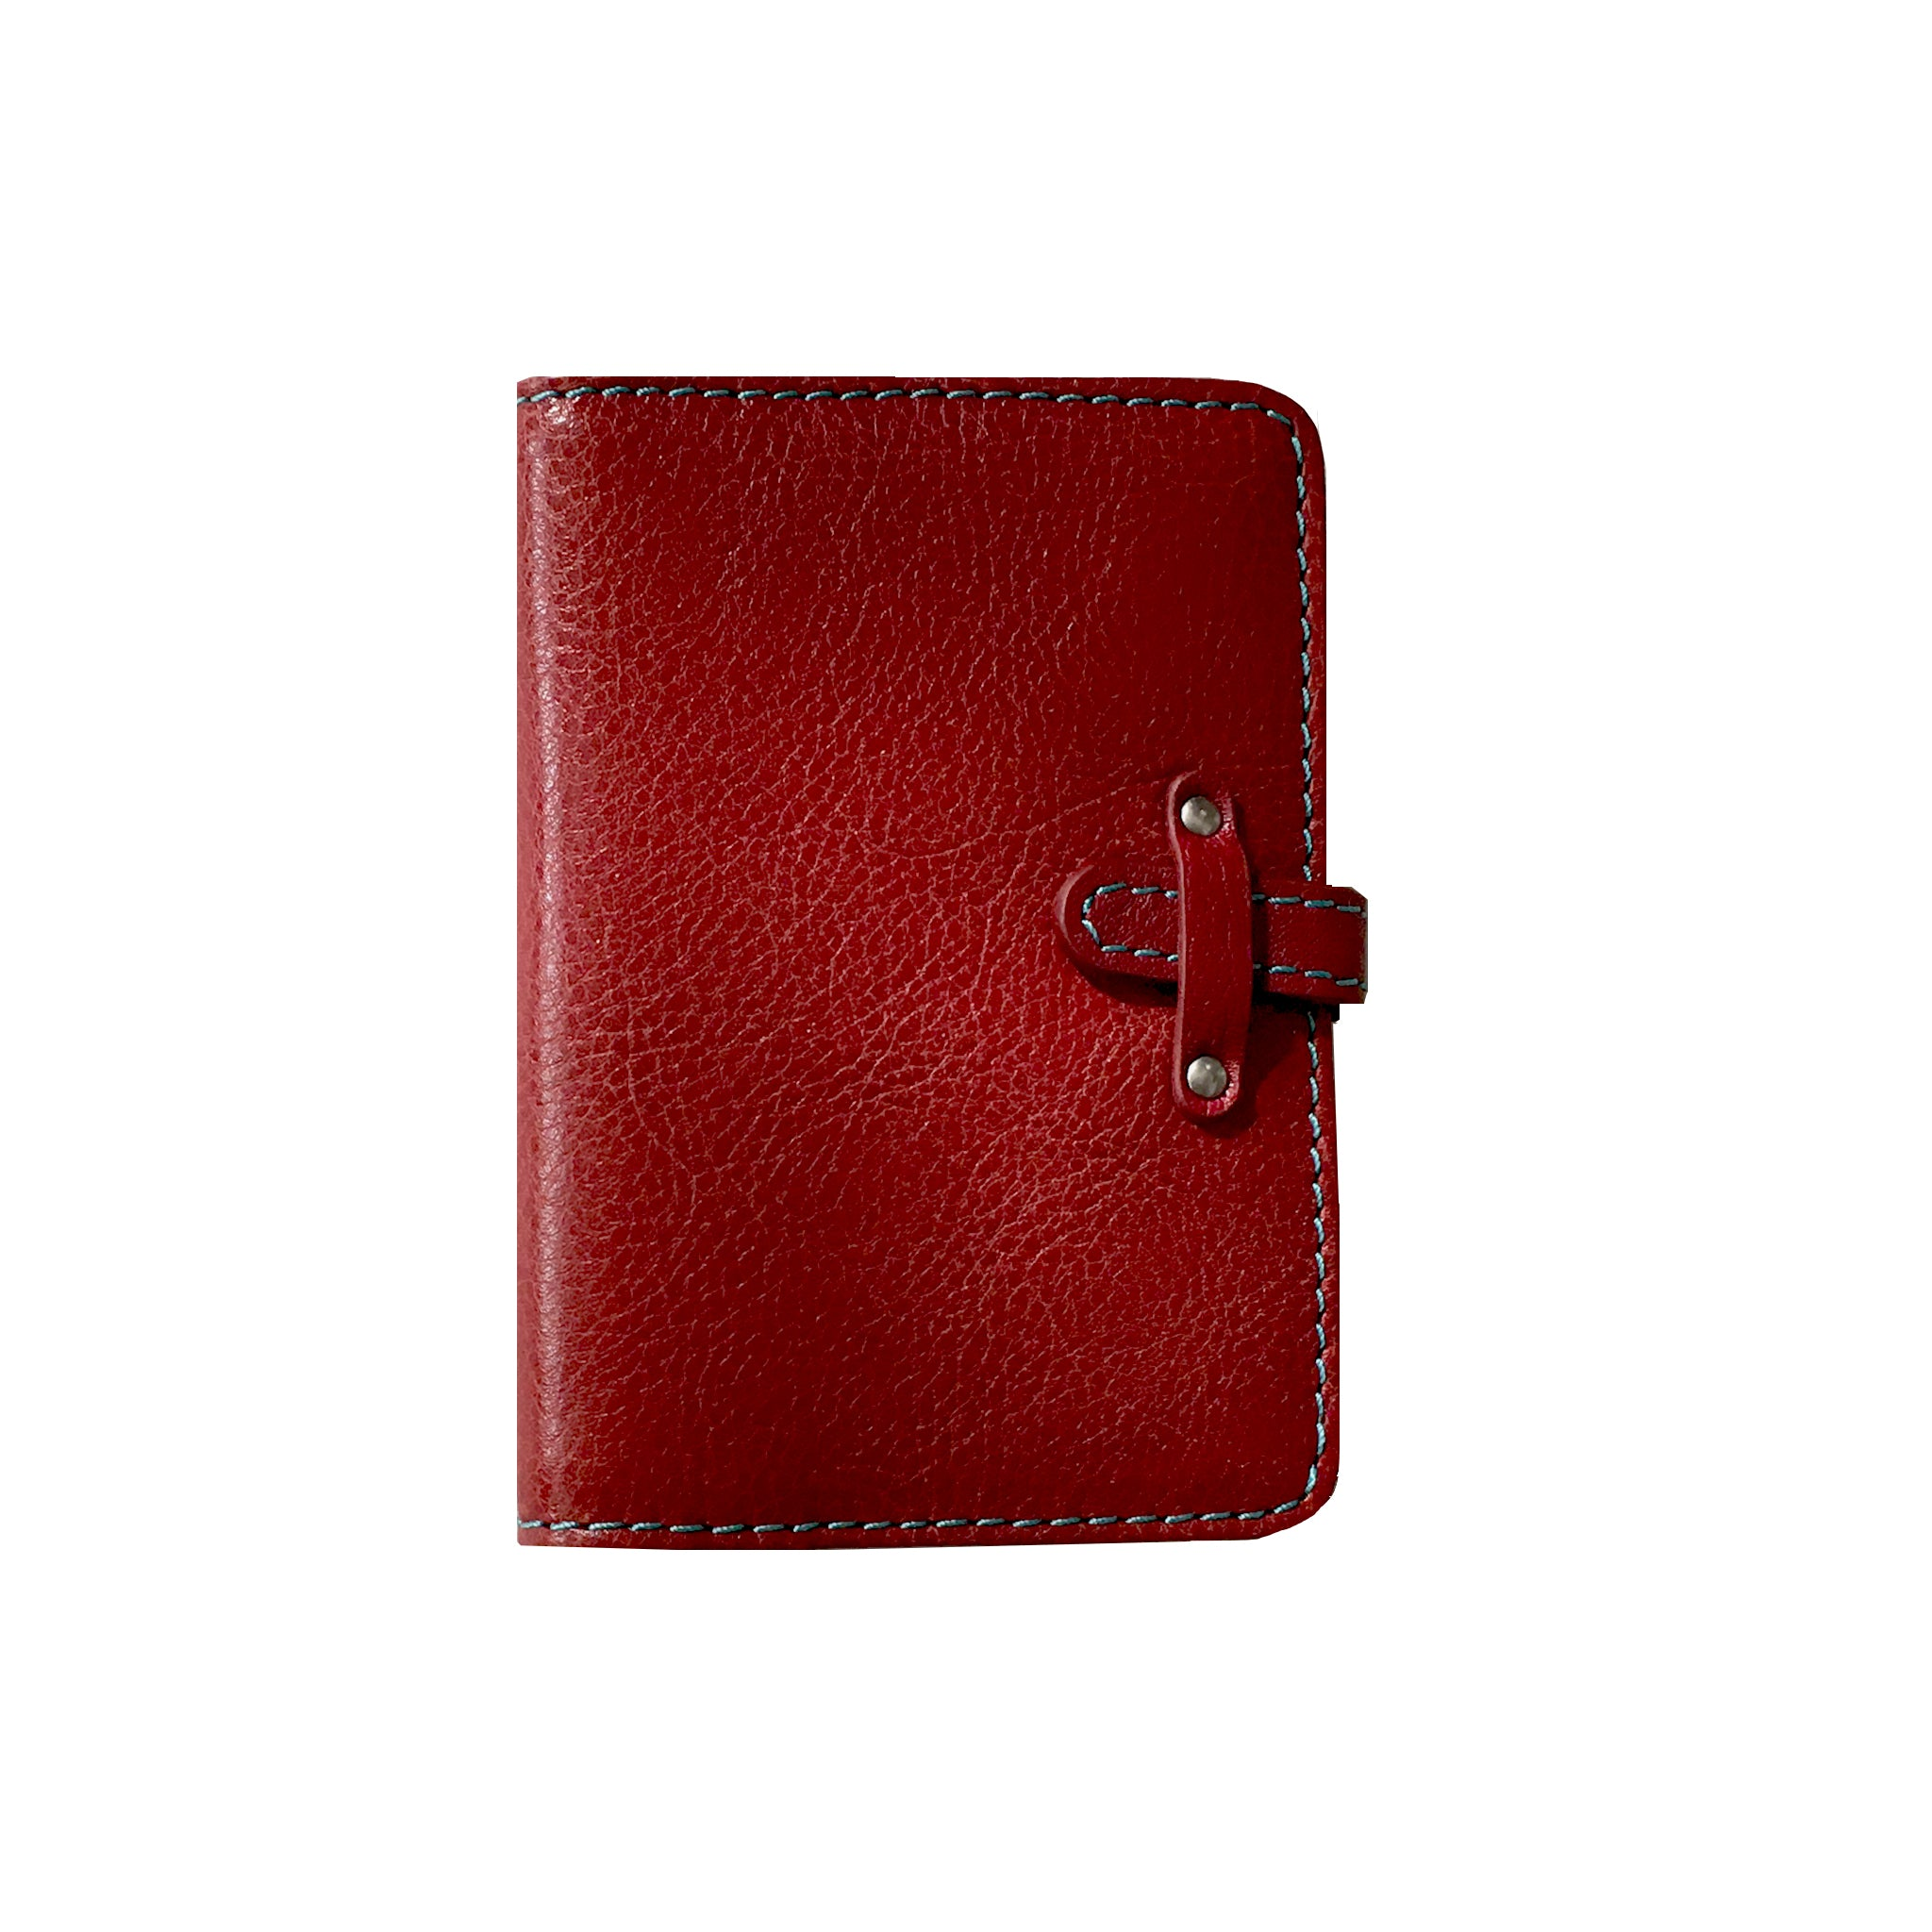 Highway Mille - The Card Case | Red